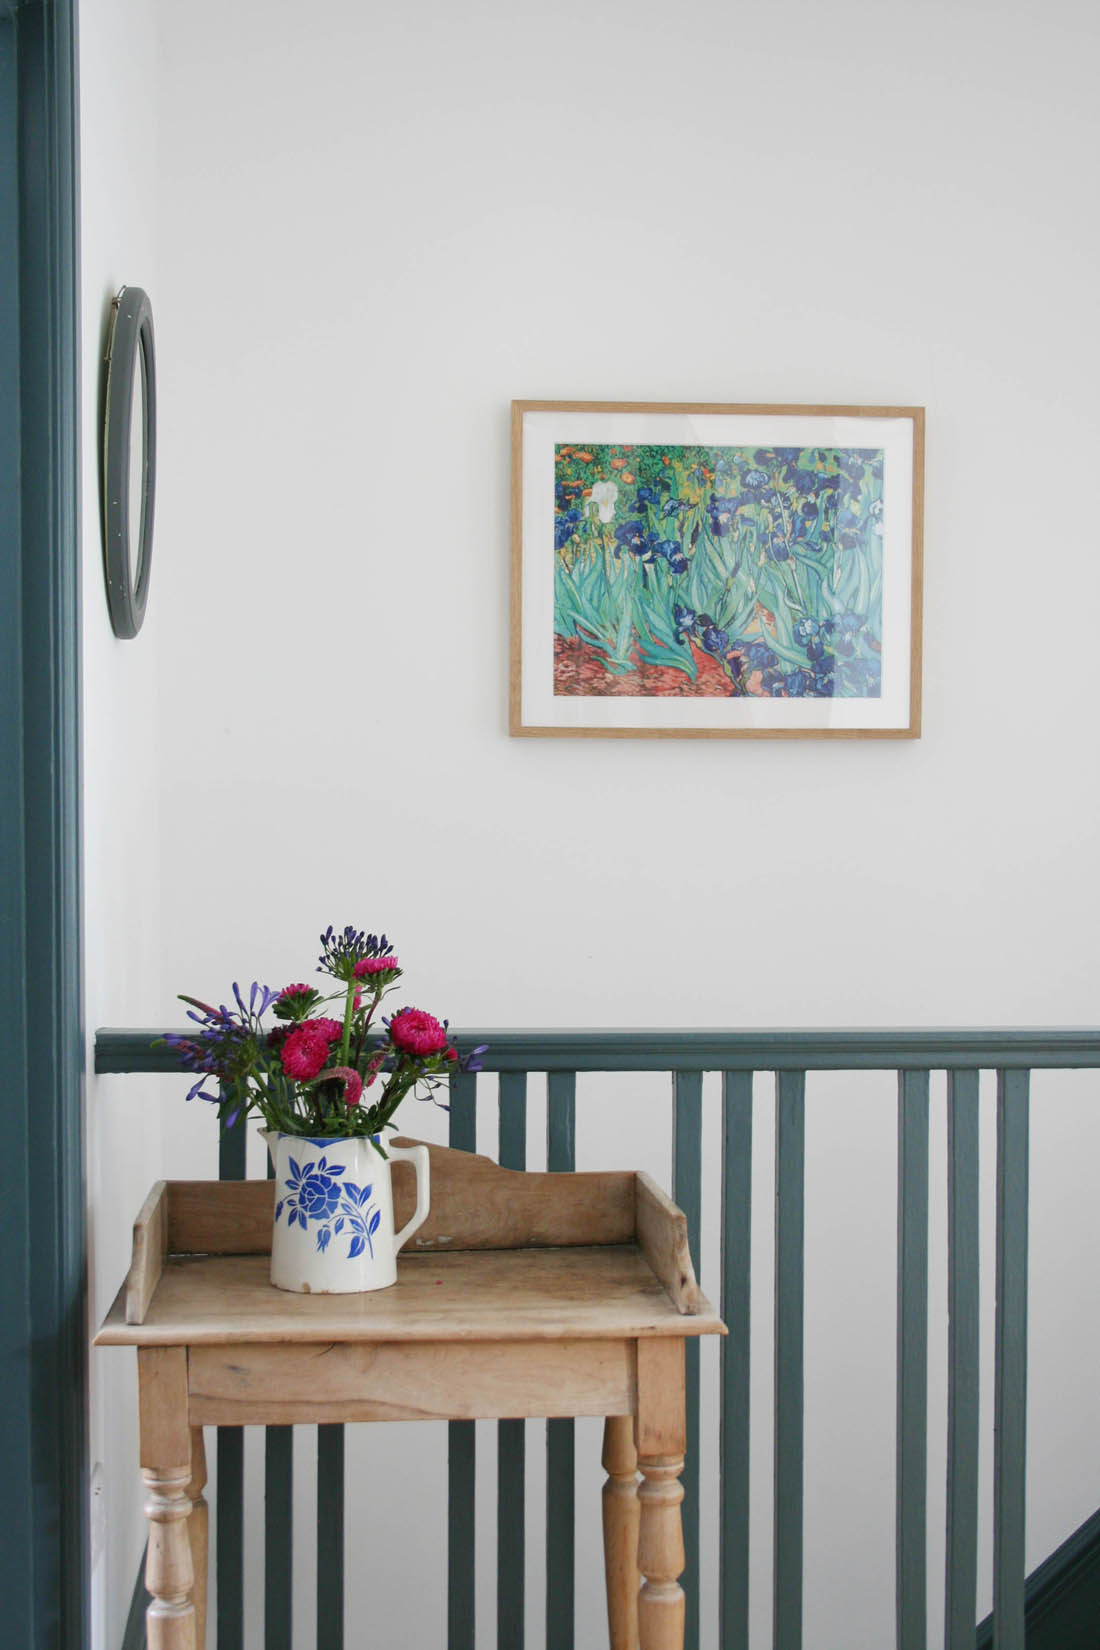 Choosing art work for your home